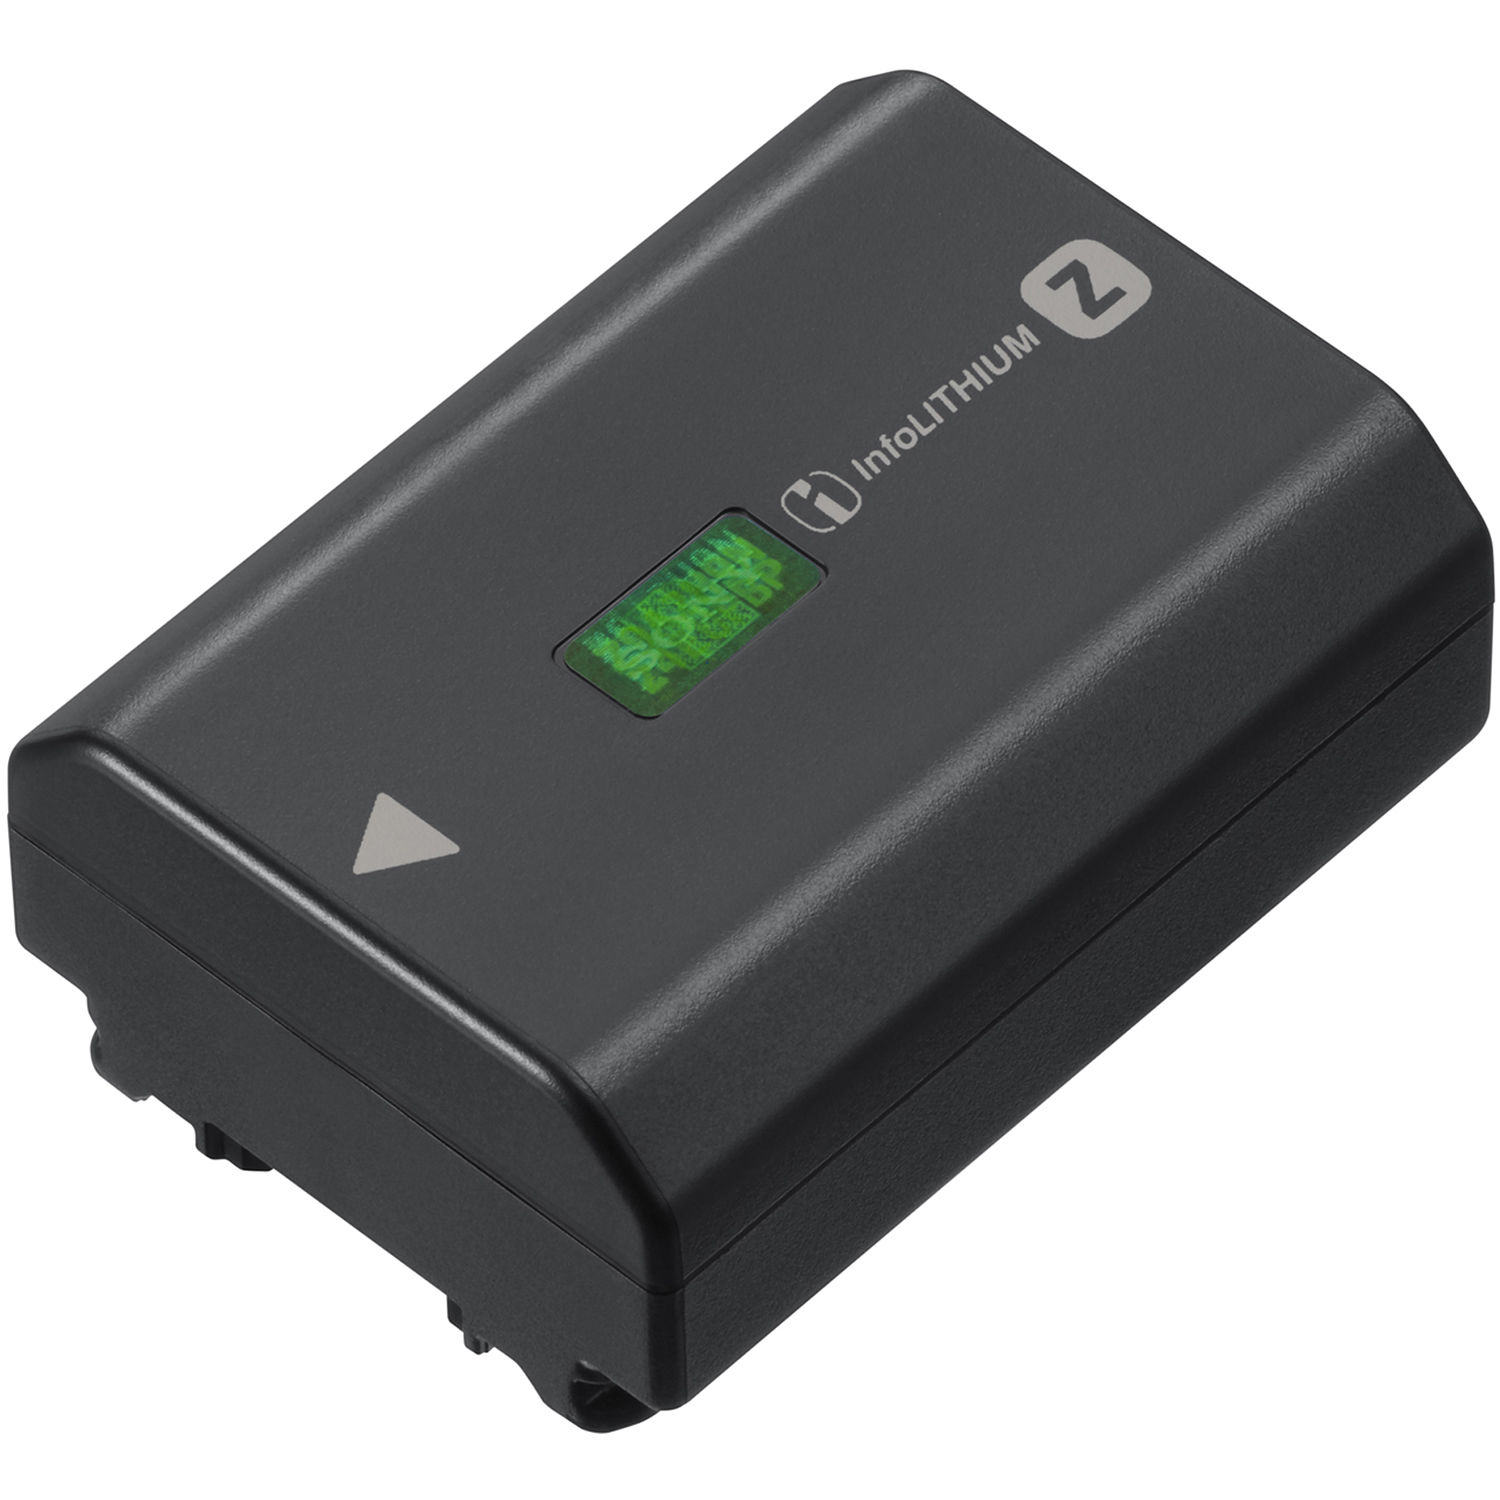 Lithium Ion Battery : Sony np fz rechargeable lithium ion battery mah